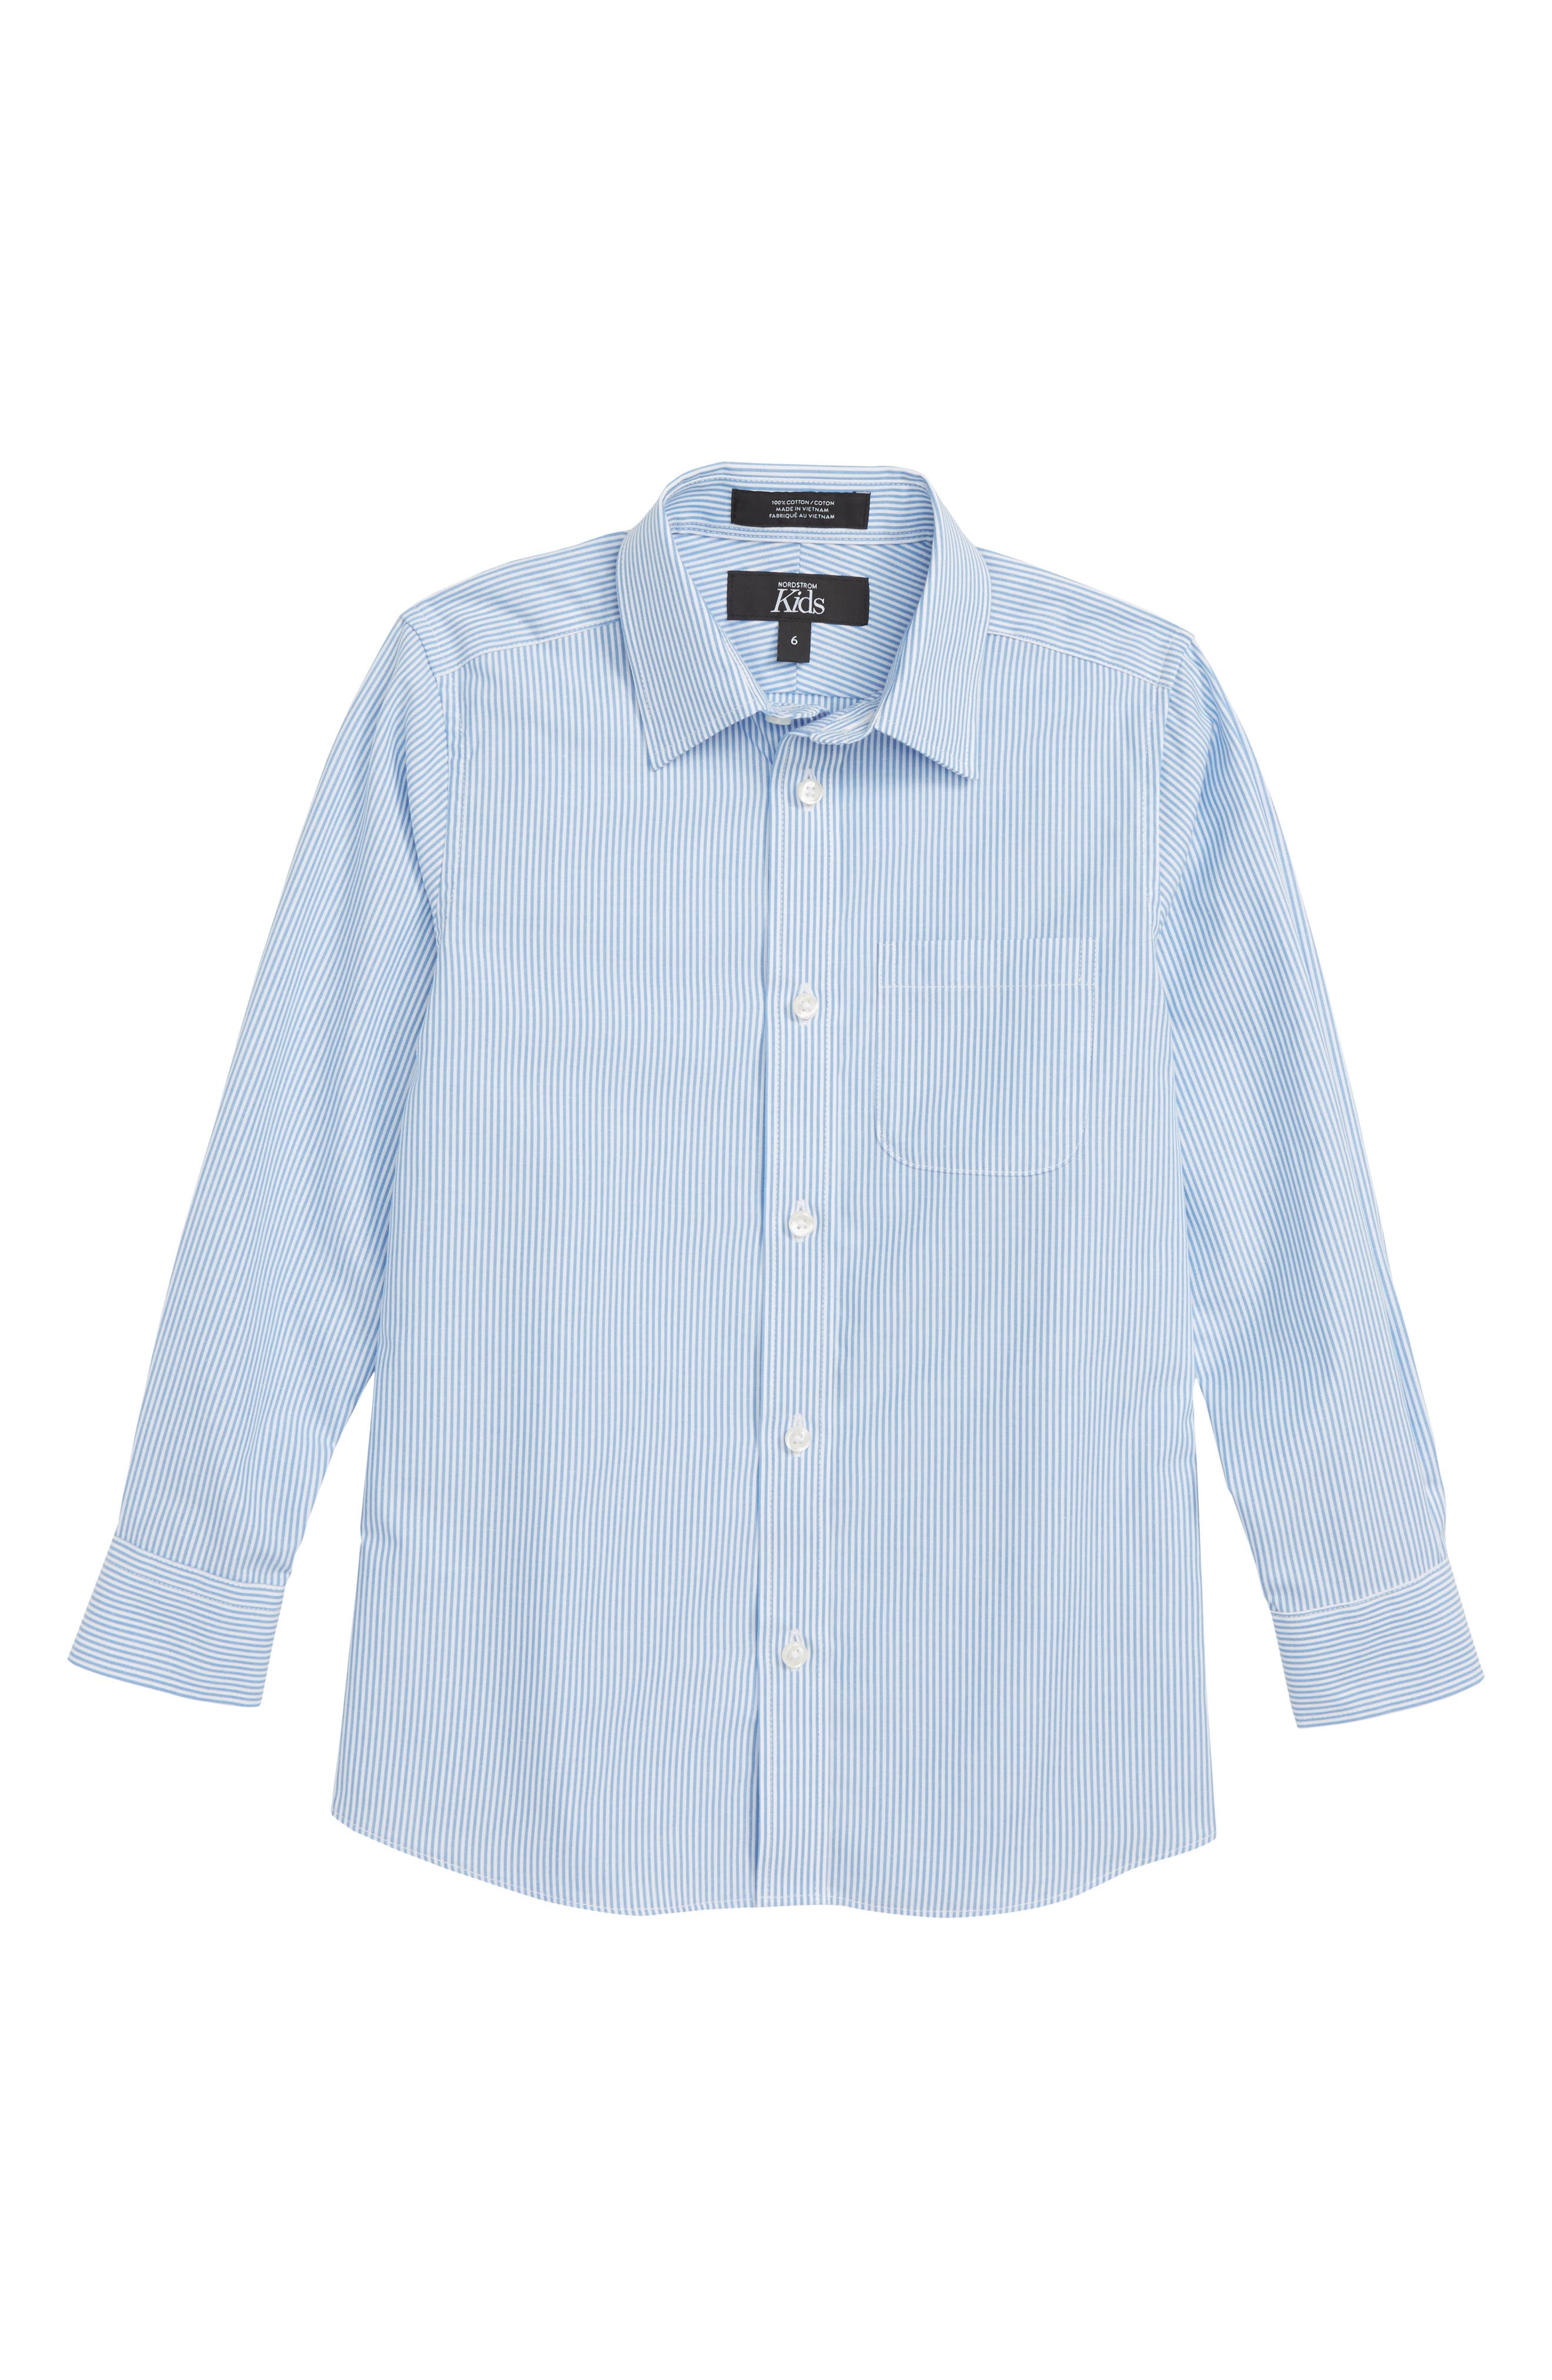 Heritage Stripe Dress Shirt,                             Main thumbnail 1, color,                             Blue Heritage- White Stripe